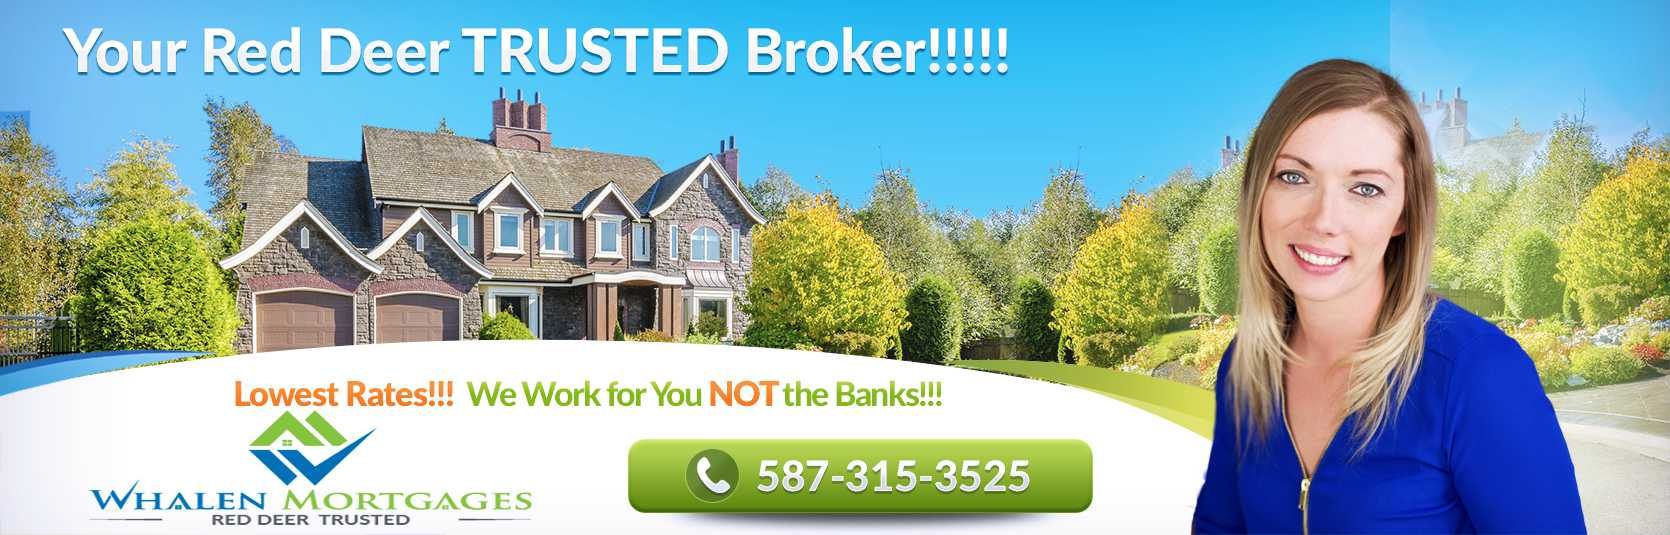 Mortgage Lender Red Deer First National | Lowest Mortgage Rates